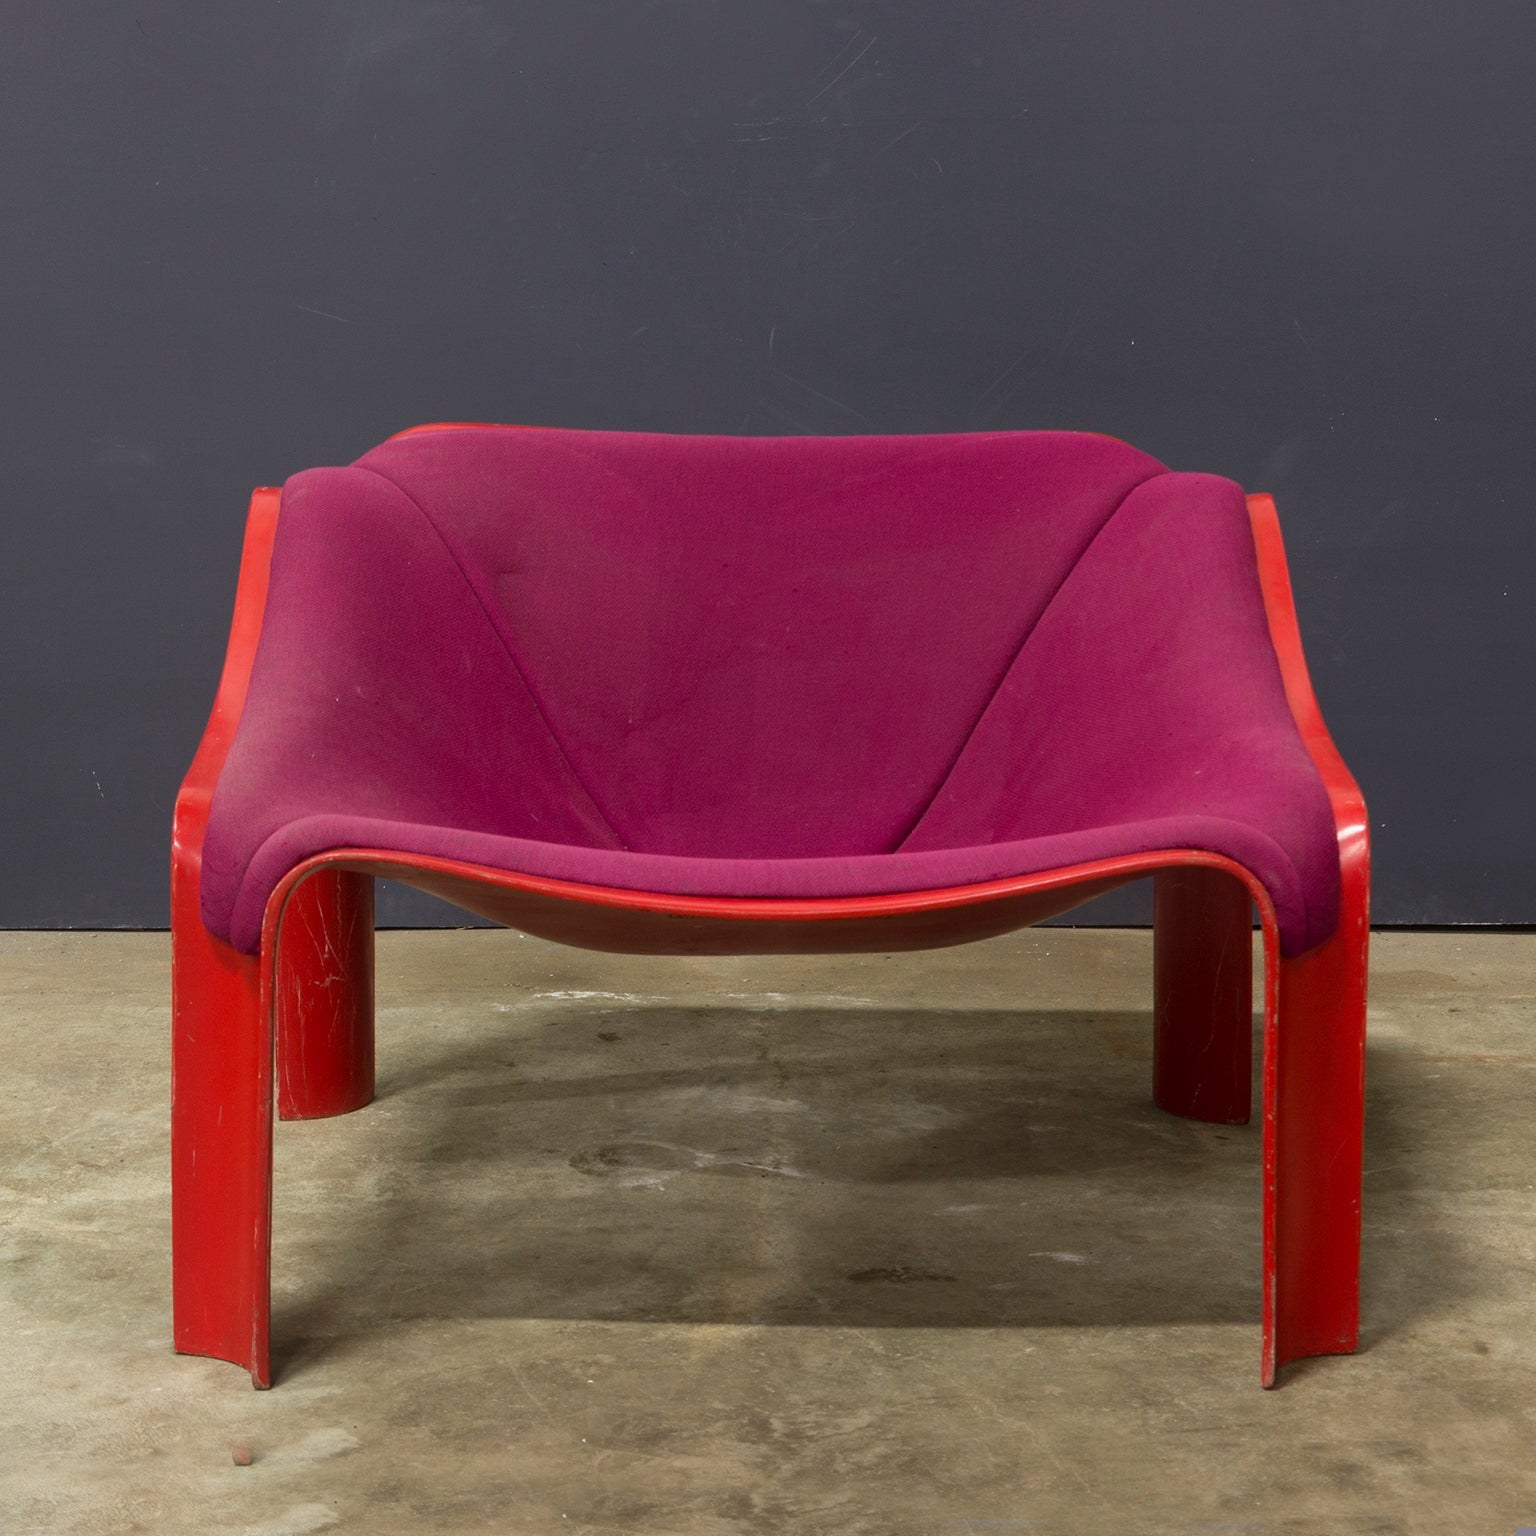 Egg Chair Roze.1963 Pierre Paulin F303 Lounge Chair In Red With Upholstery For